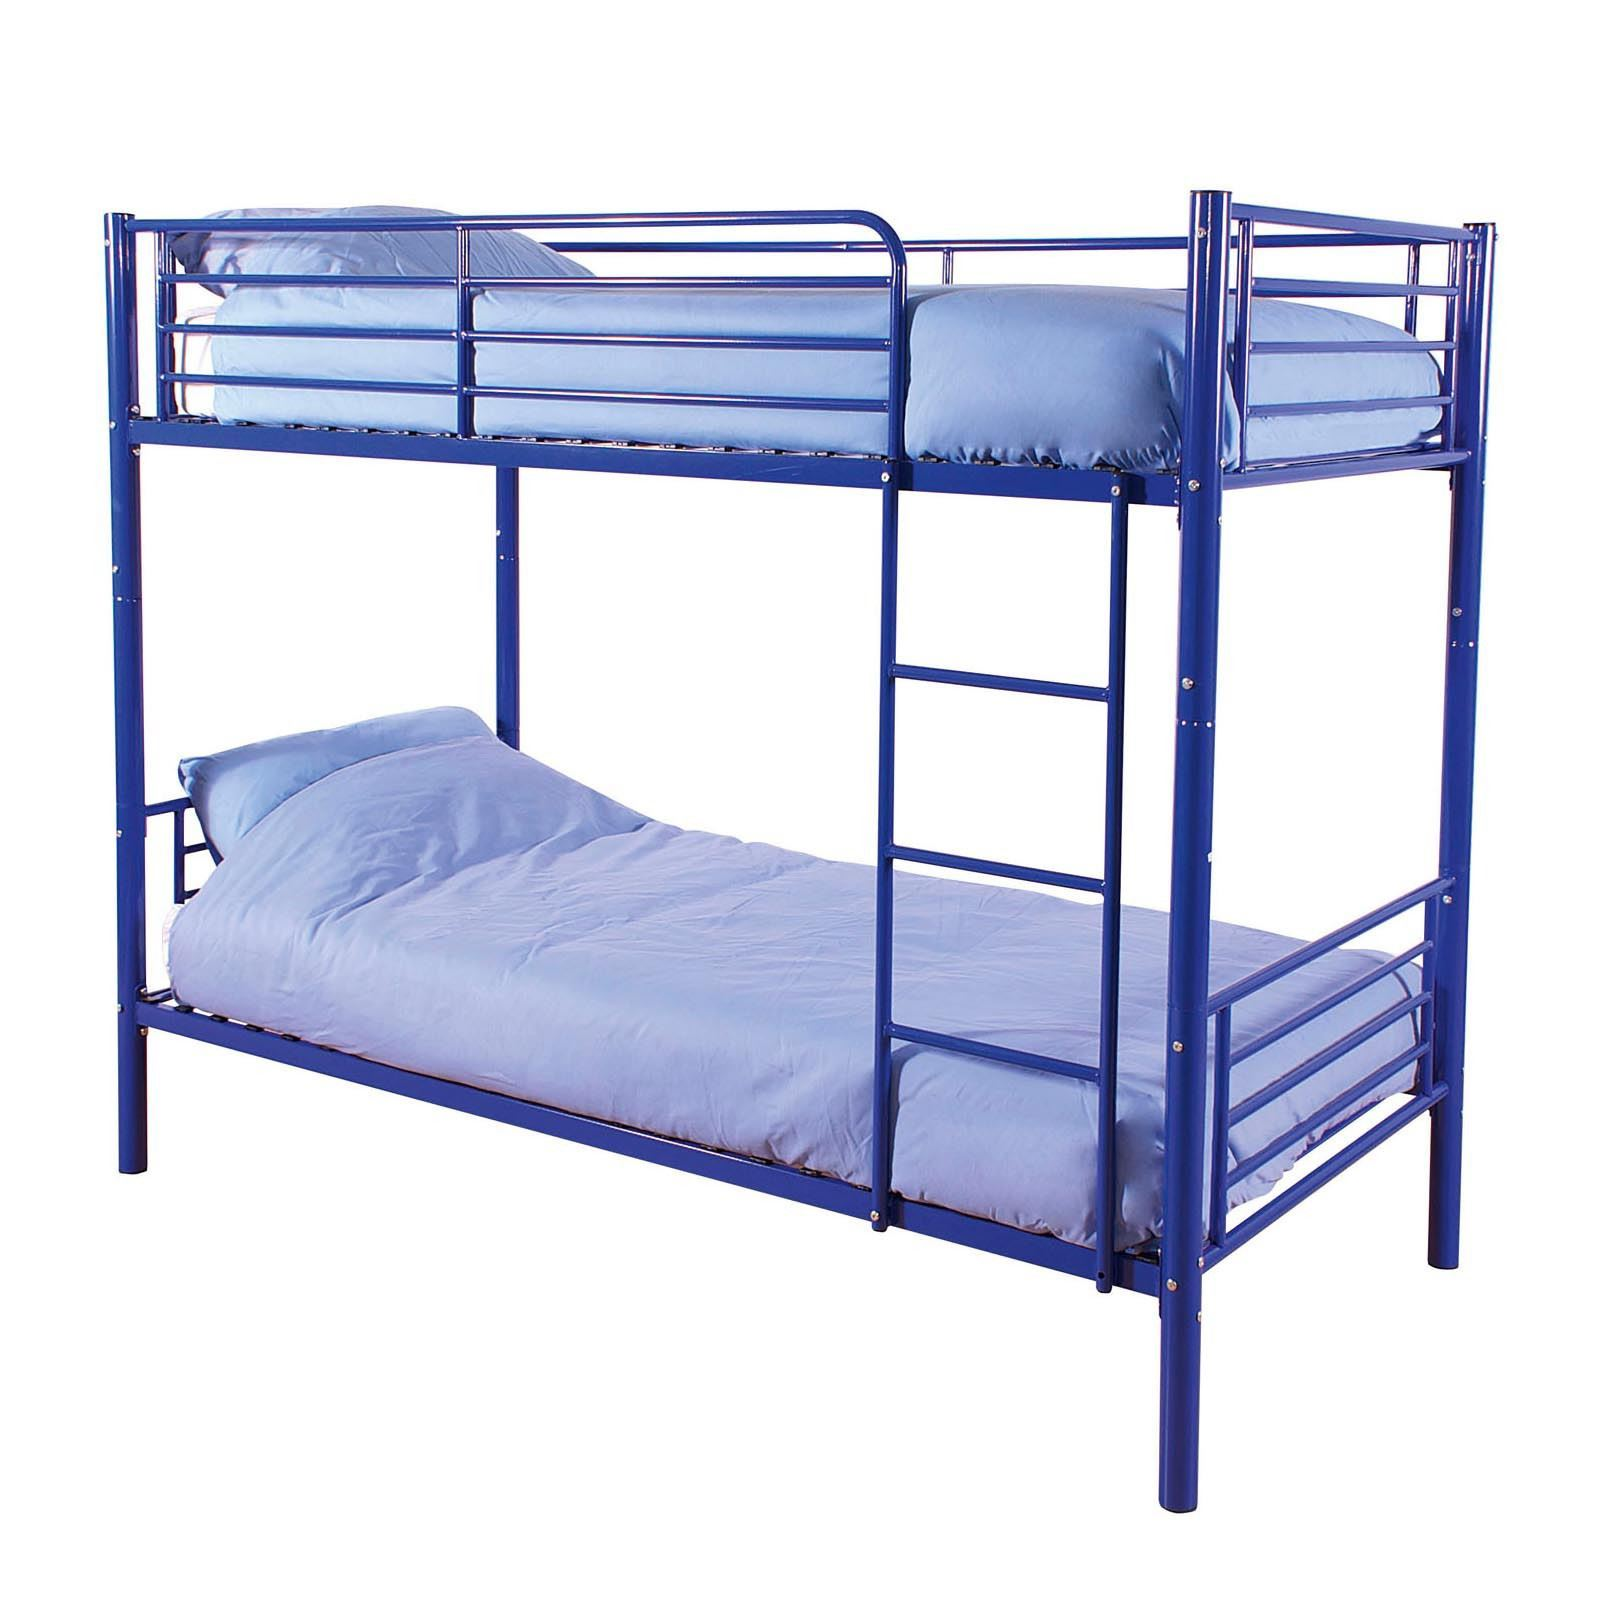 Happy beds cherry quality metal bunk bed 3ft single 2x mattress home furniture ebay Home furniture single bed